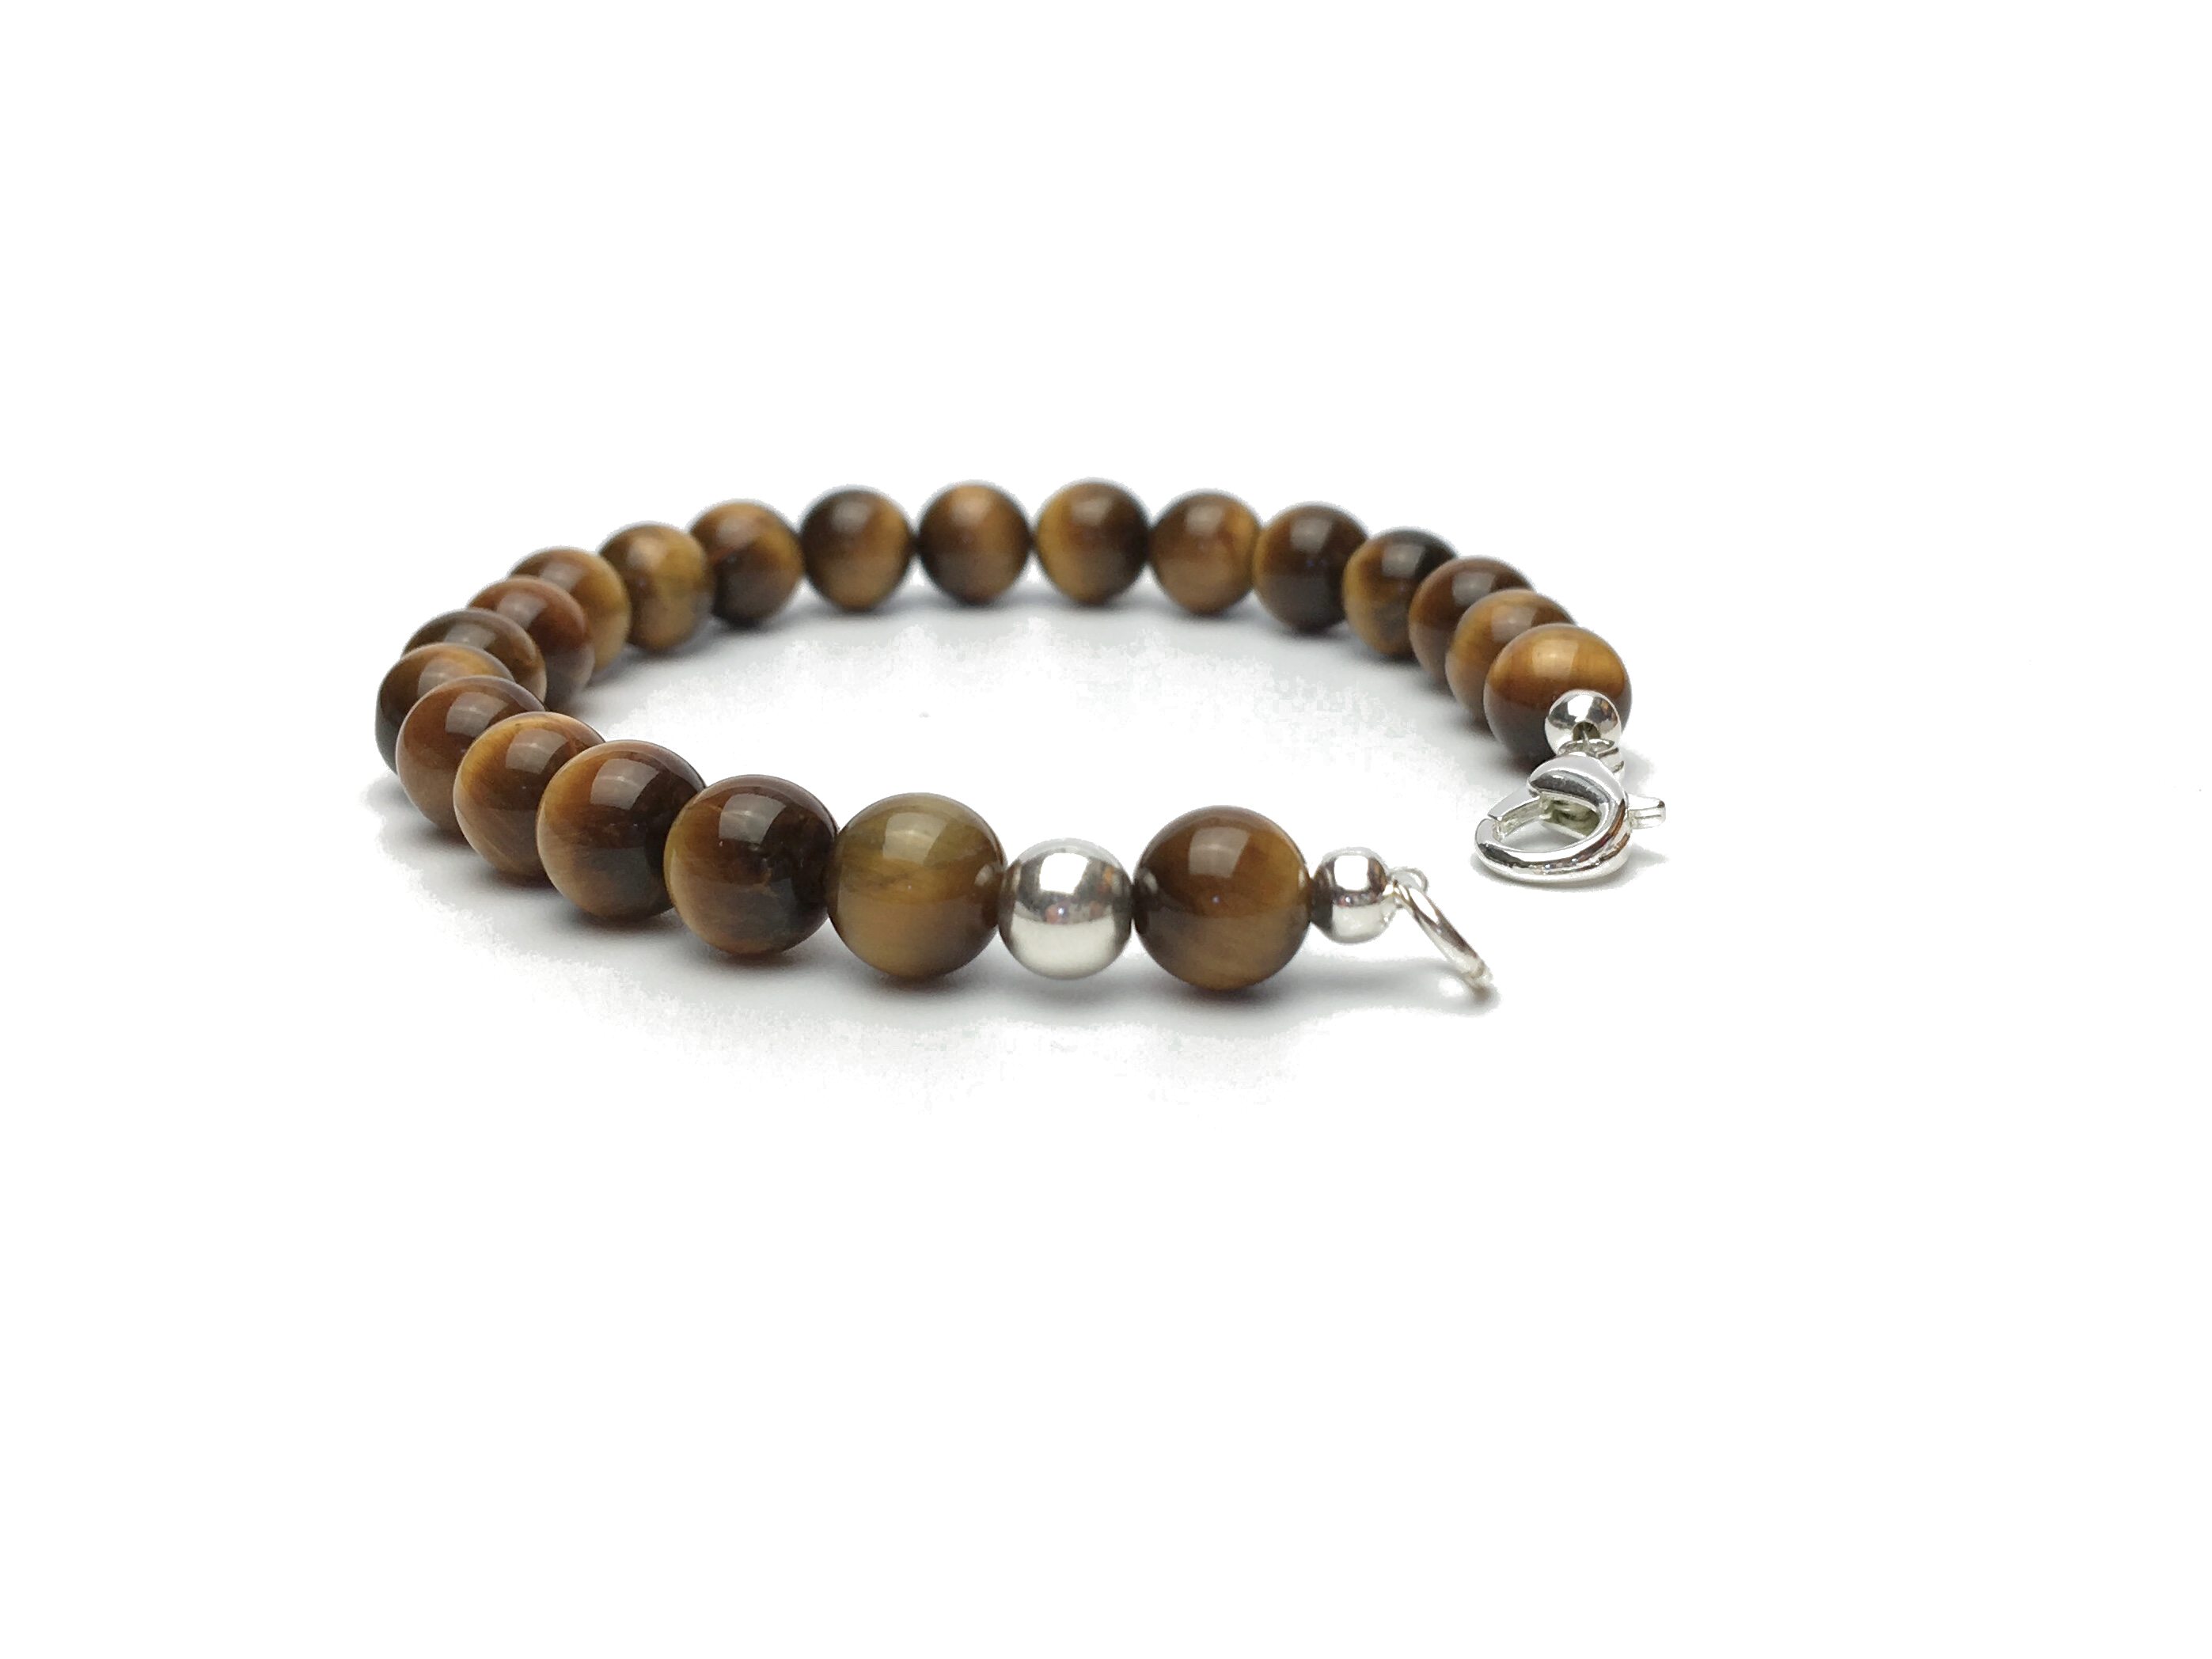 Grade A Tigers Eye Bead Bracelet with Silver Clasp